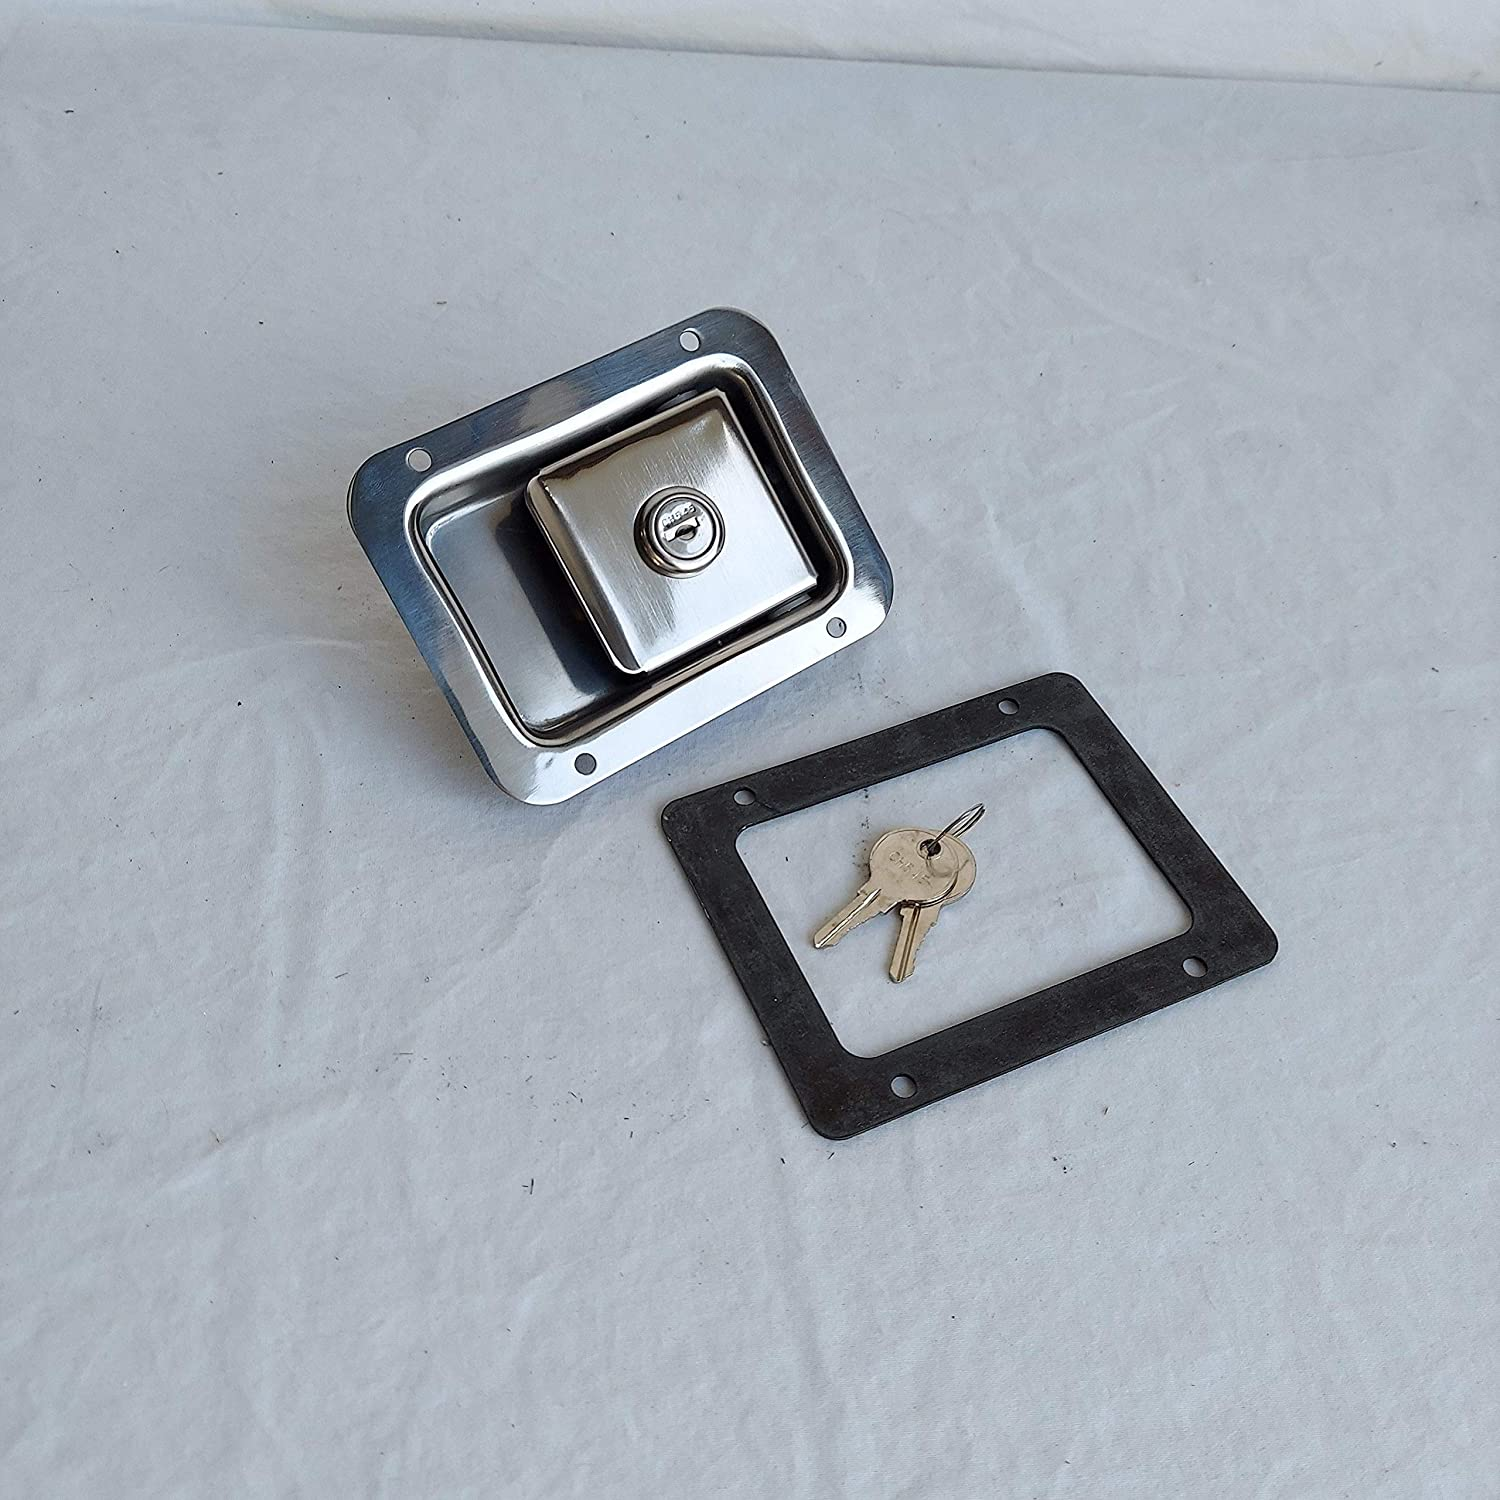 Stainless Paddle Latch Truck Tool Box Raleigh Mall Lock Popular brand x 3.75